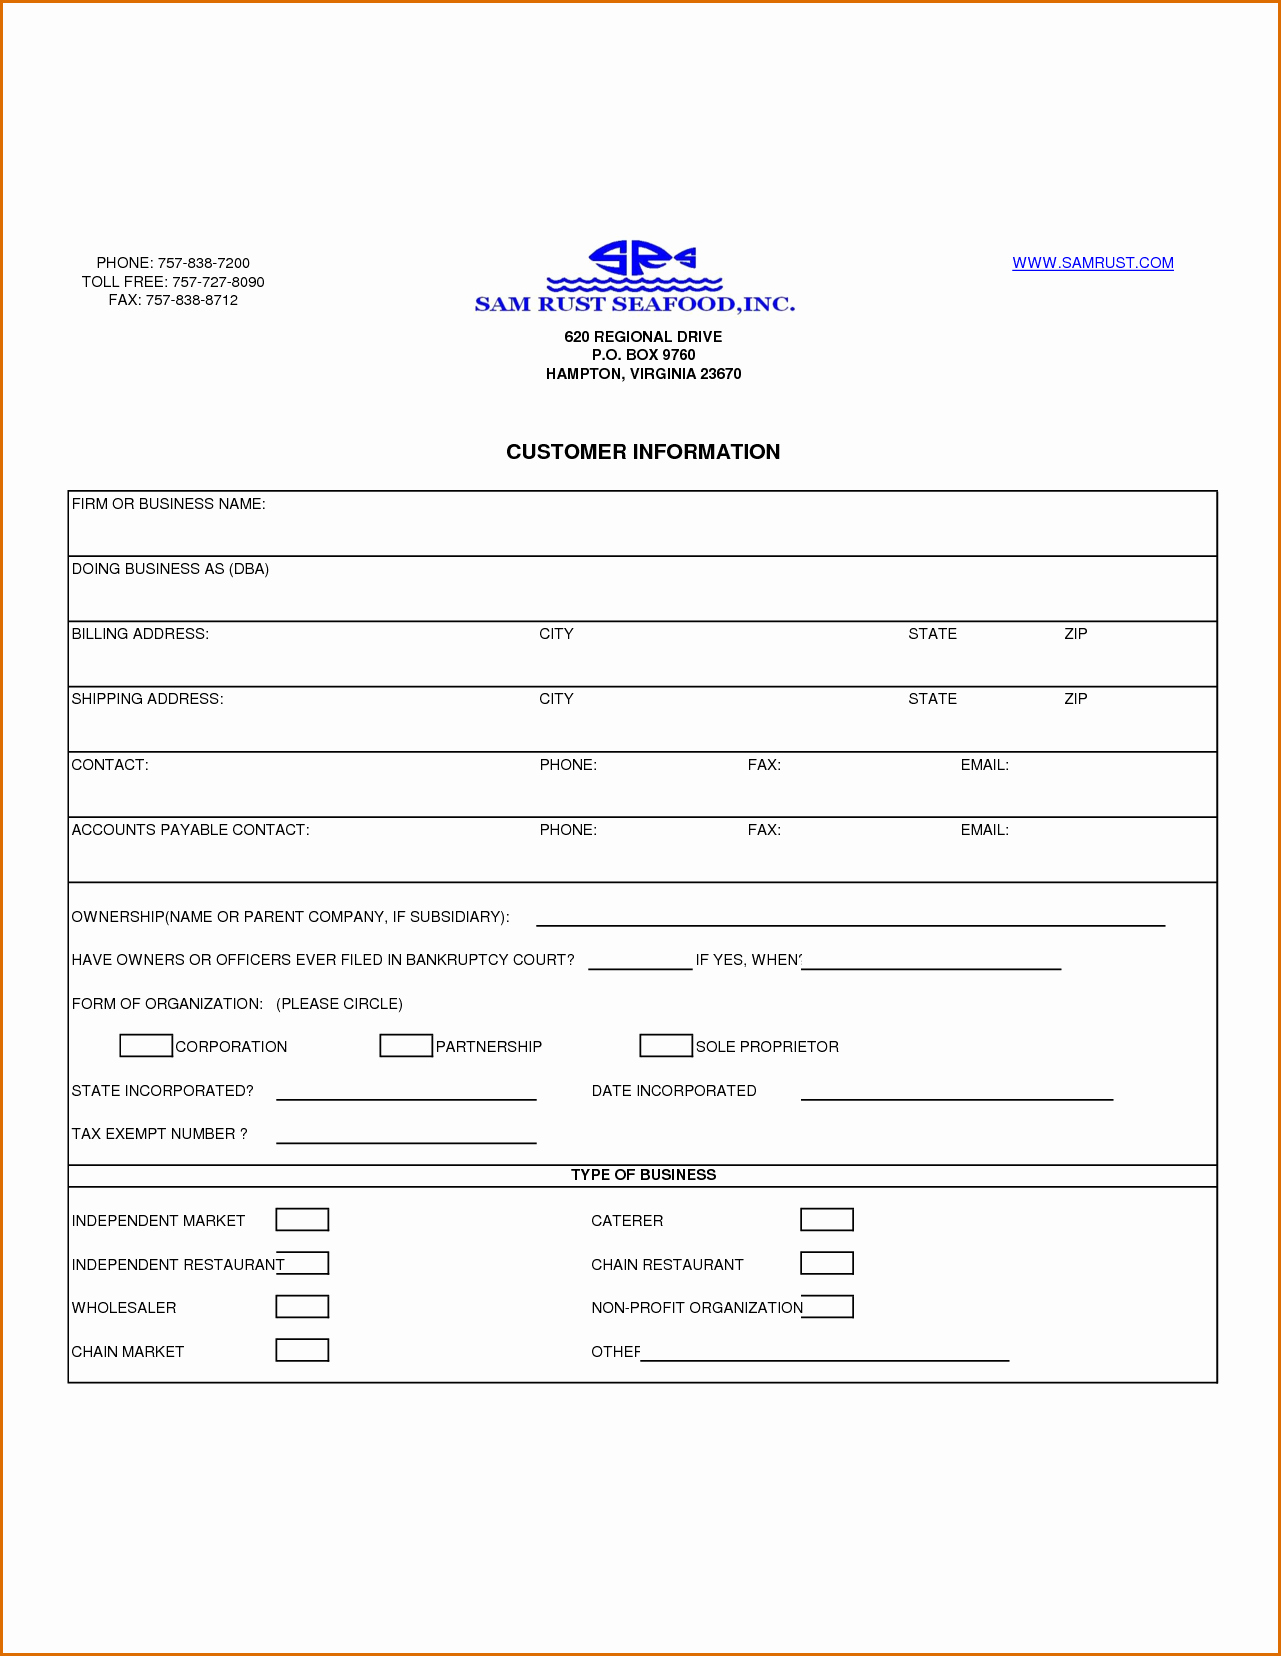 New Customer form Template Free New 13 Customer Information form Template